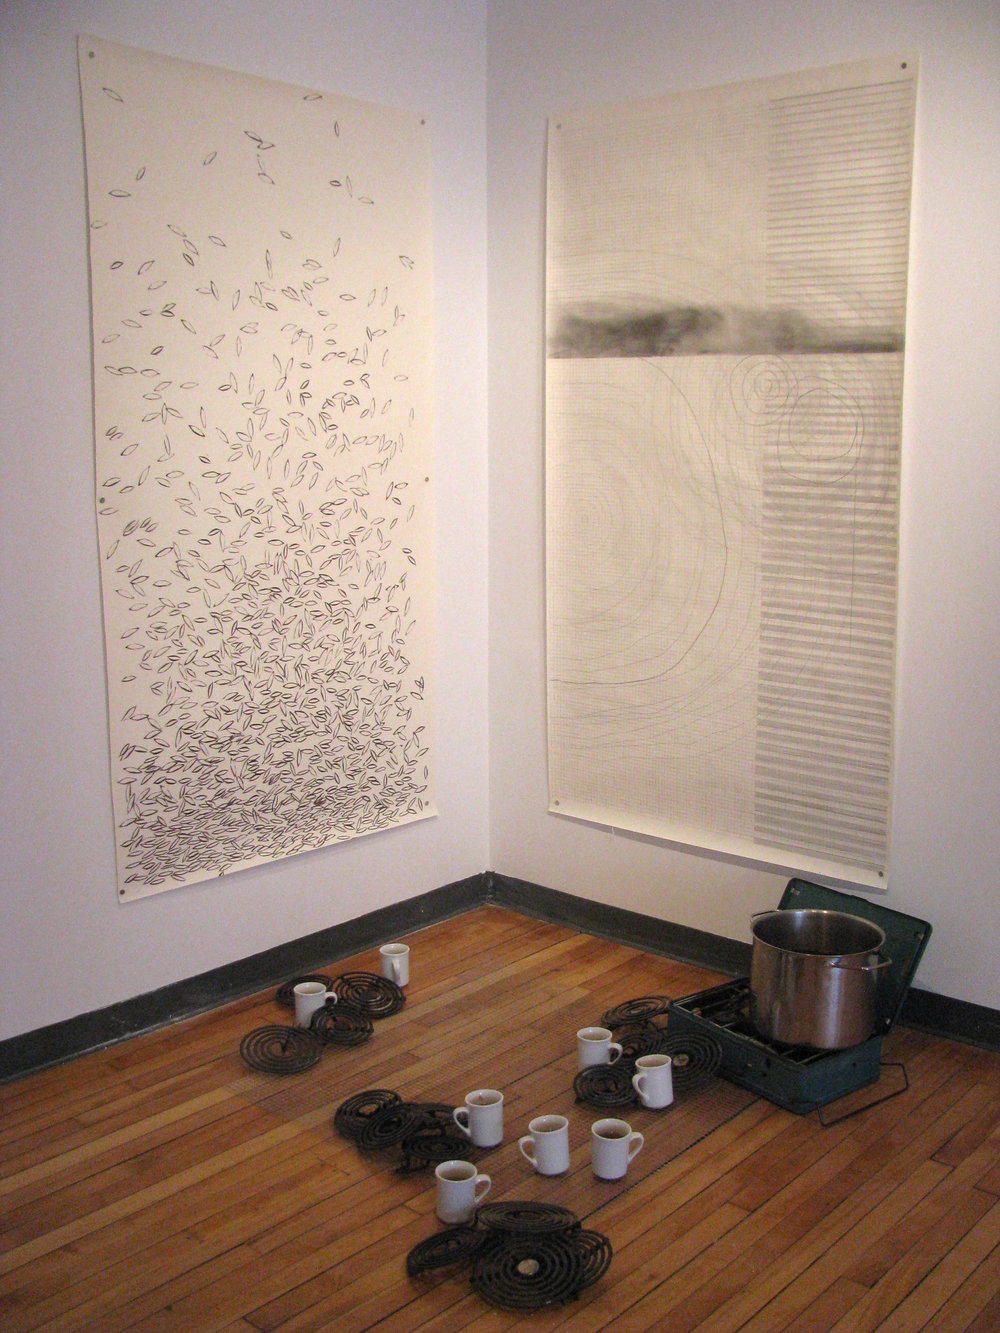 Suzanne Morrissette,  solve, for some  (installation shot),   2011, installation with ink and pencil on paper, cookstove, wire mesh, ceramic cups, labrador tea, stovetop elements.Photo by Lisa Myers.